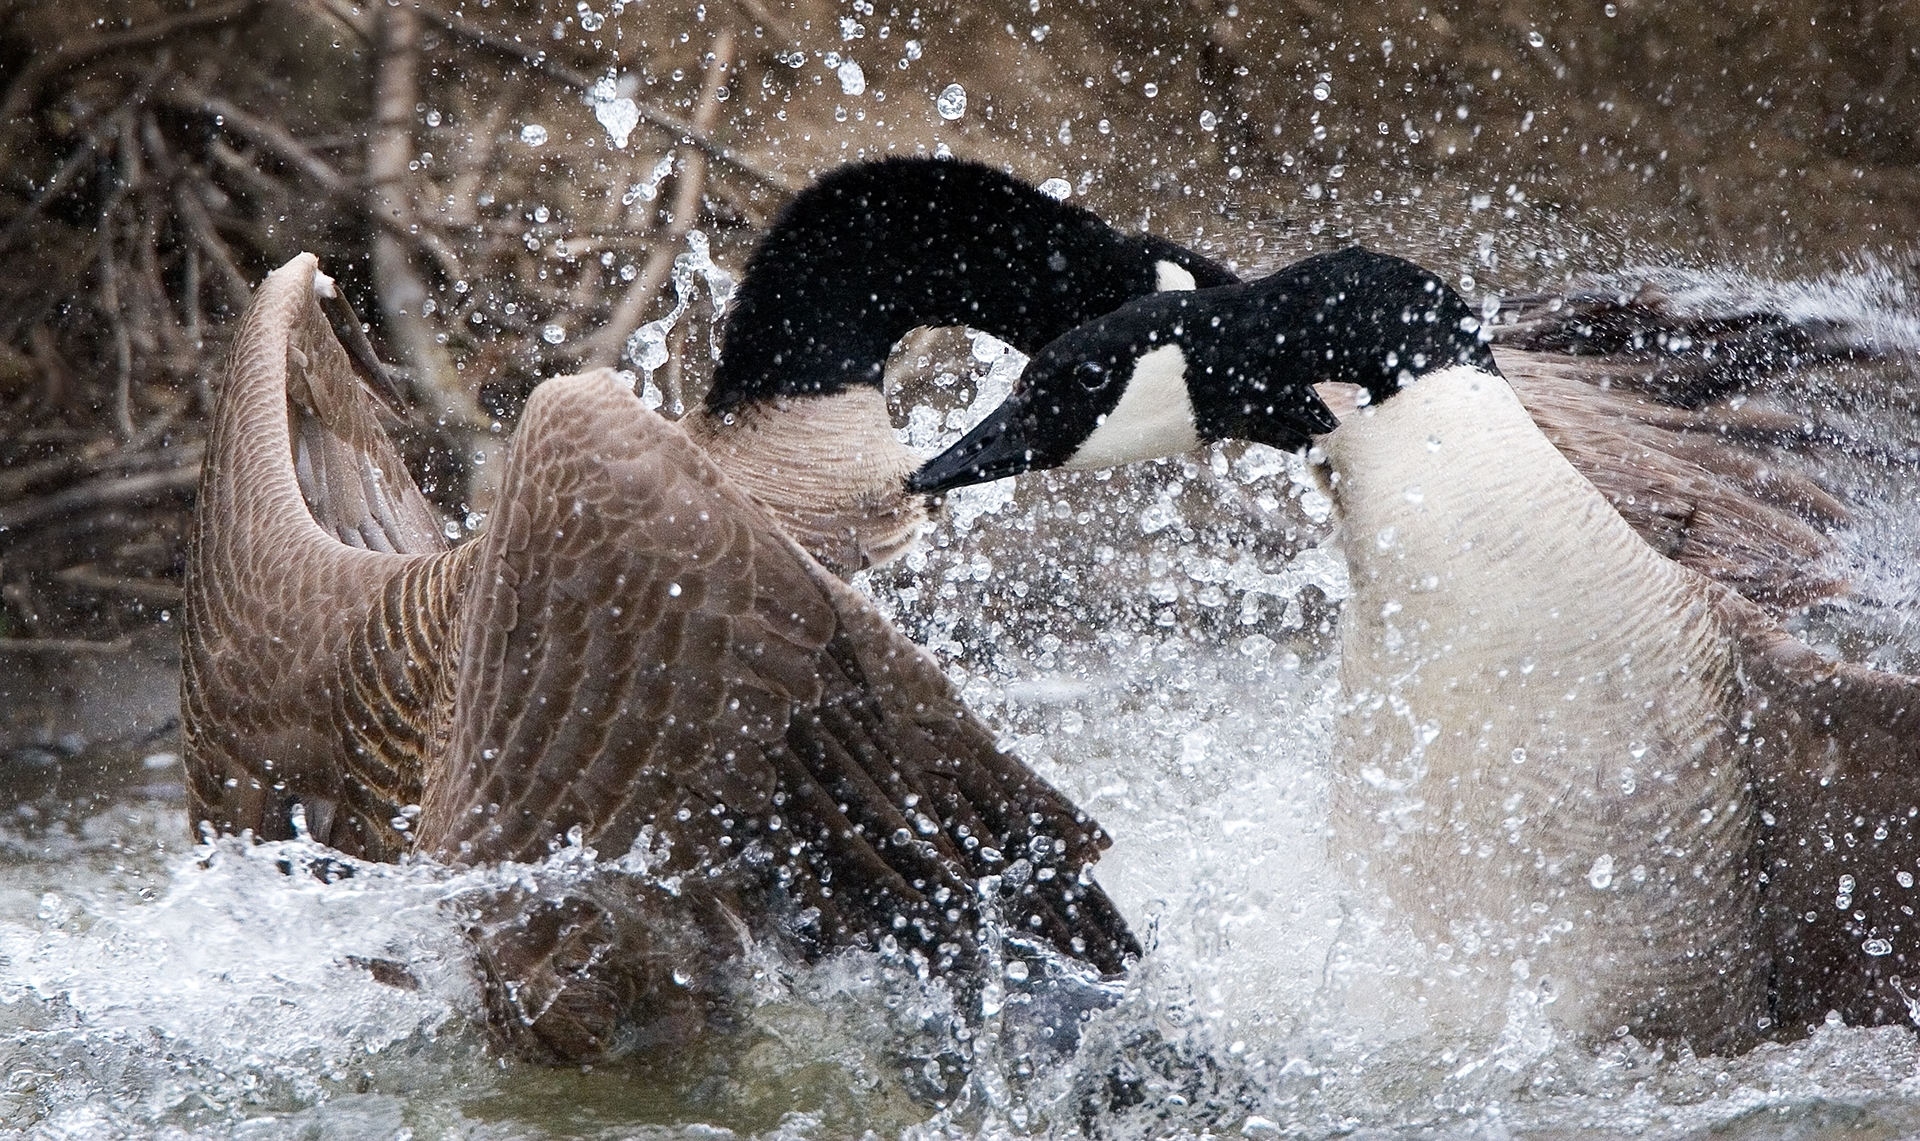 Canada-Geese-Grab-Chest-Feathers-During-Vicious-Fight-NA-Best-in-Show-by-Claudia-Peterson-SC